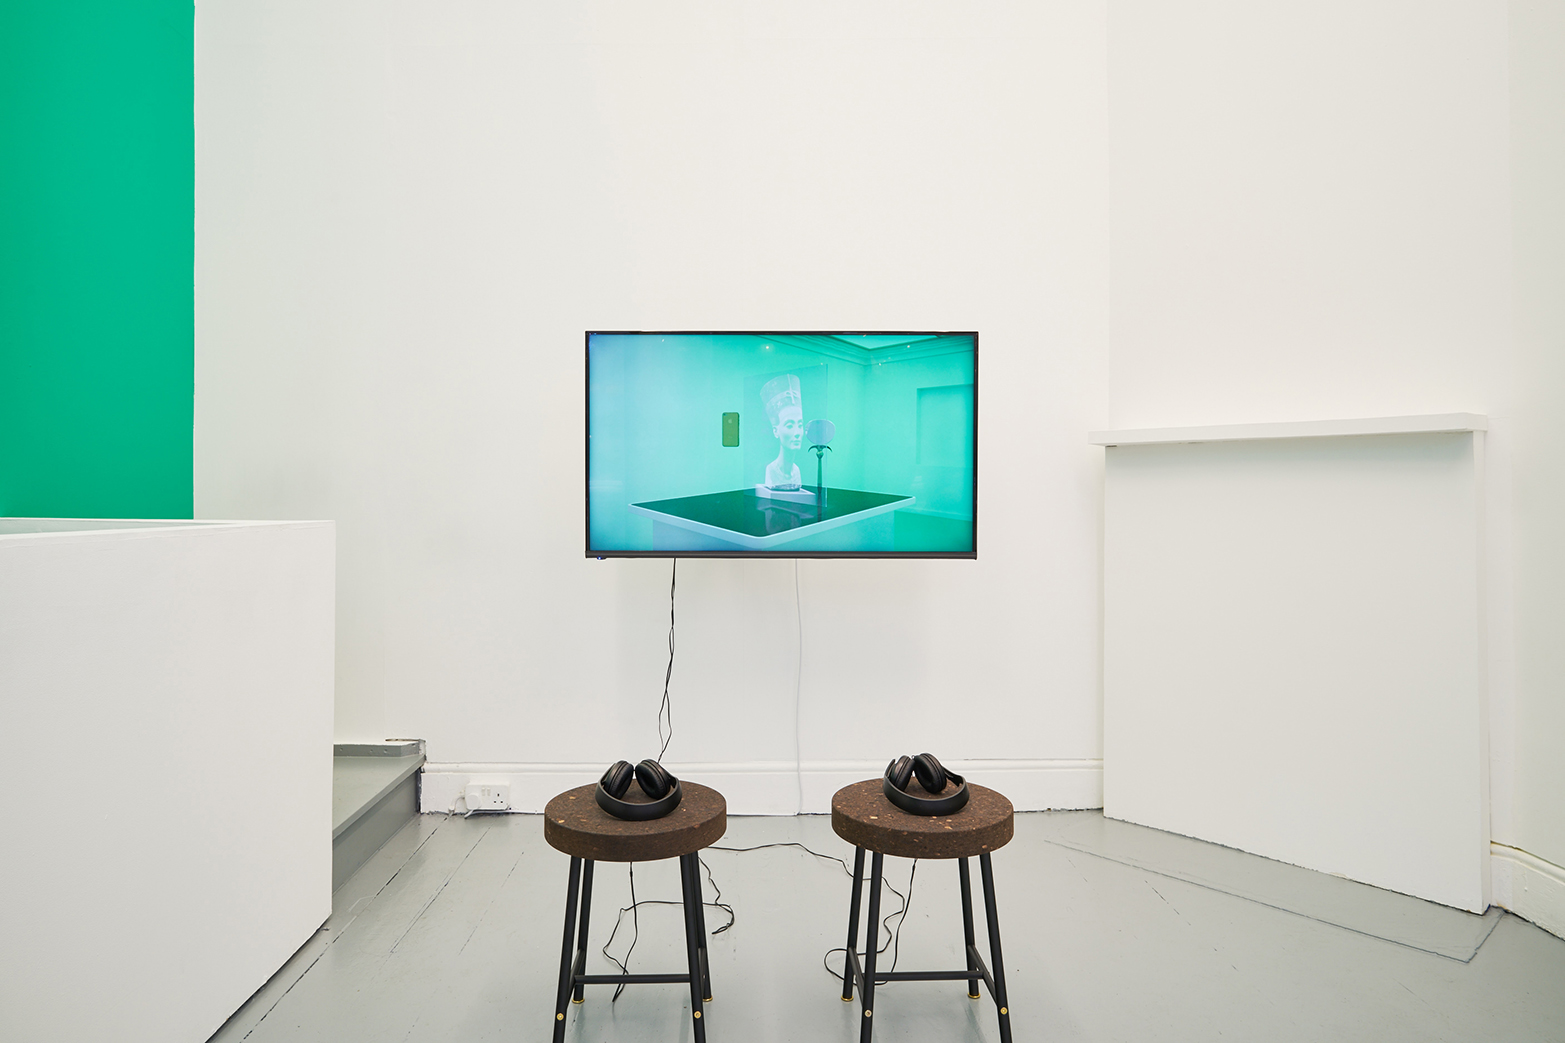 David Ferrando Giraut, CATOPTROPHILIA, 2013. Digital animation with sound, 12'14''. Installation view at Tenderpixel.